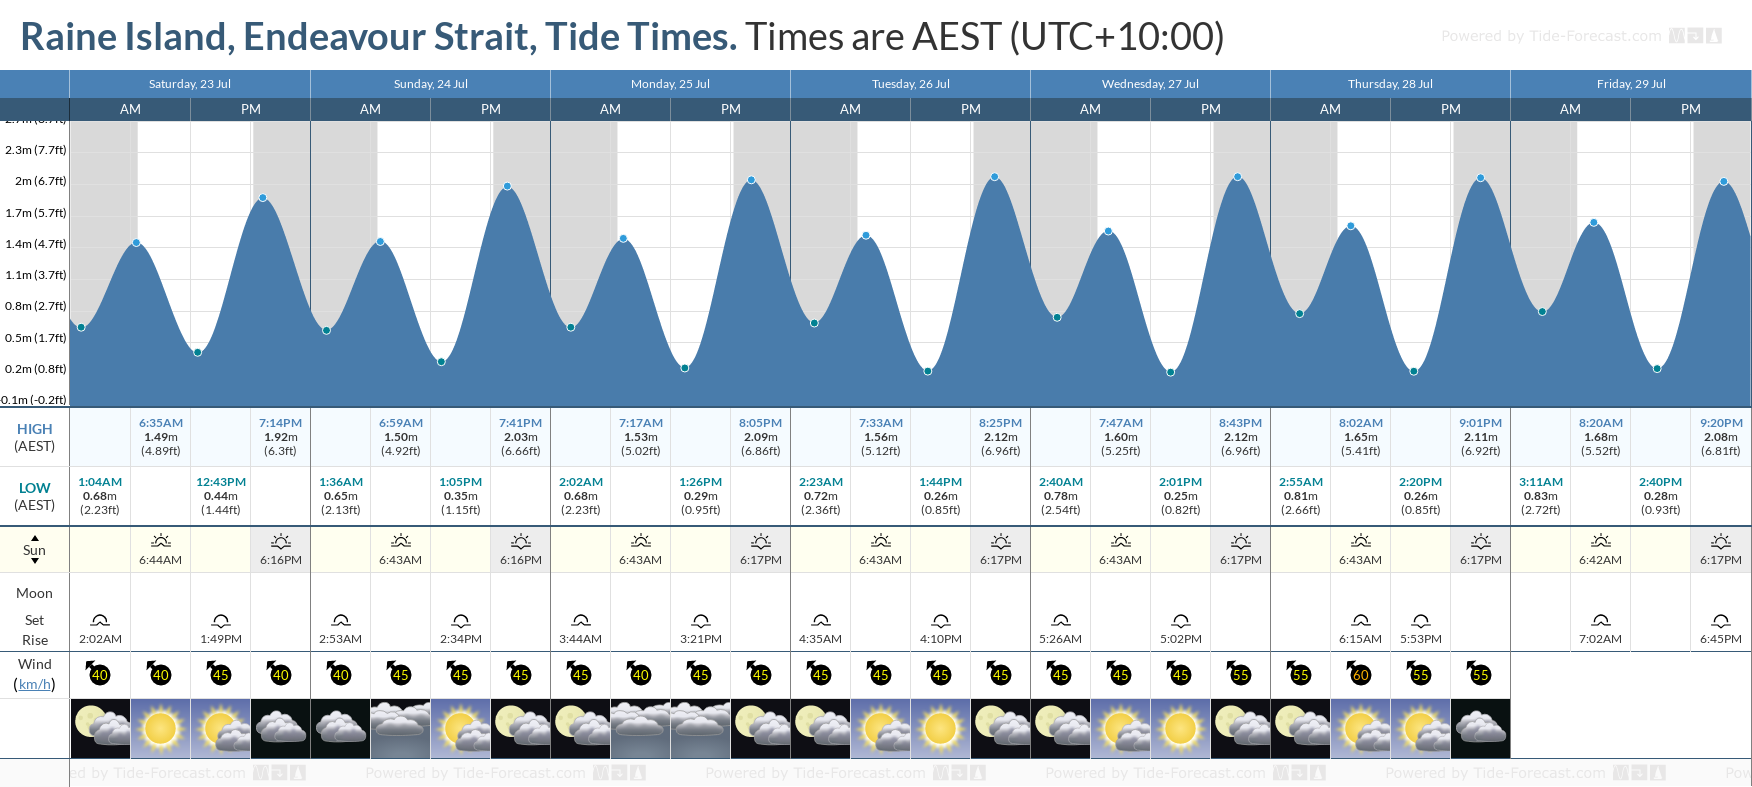 Raine Island, Endeavour Strait Tide Chart including high and low tide tide times for the next 7 days